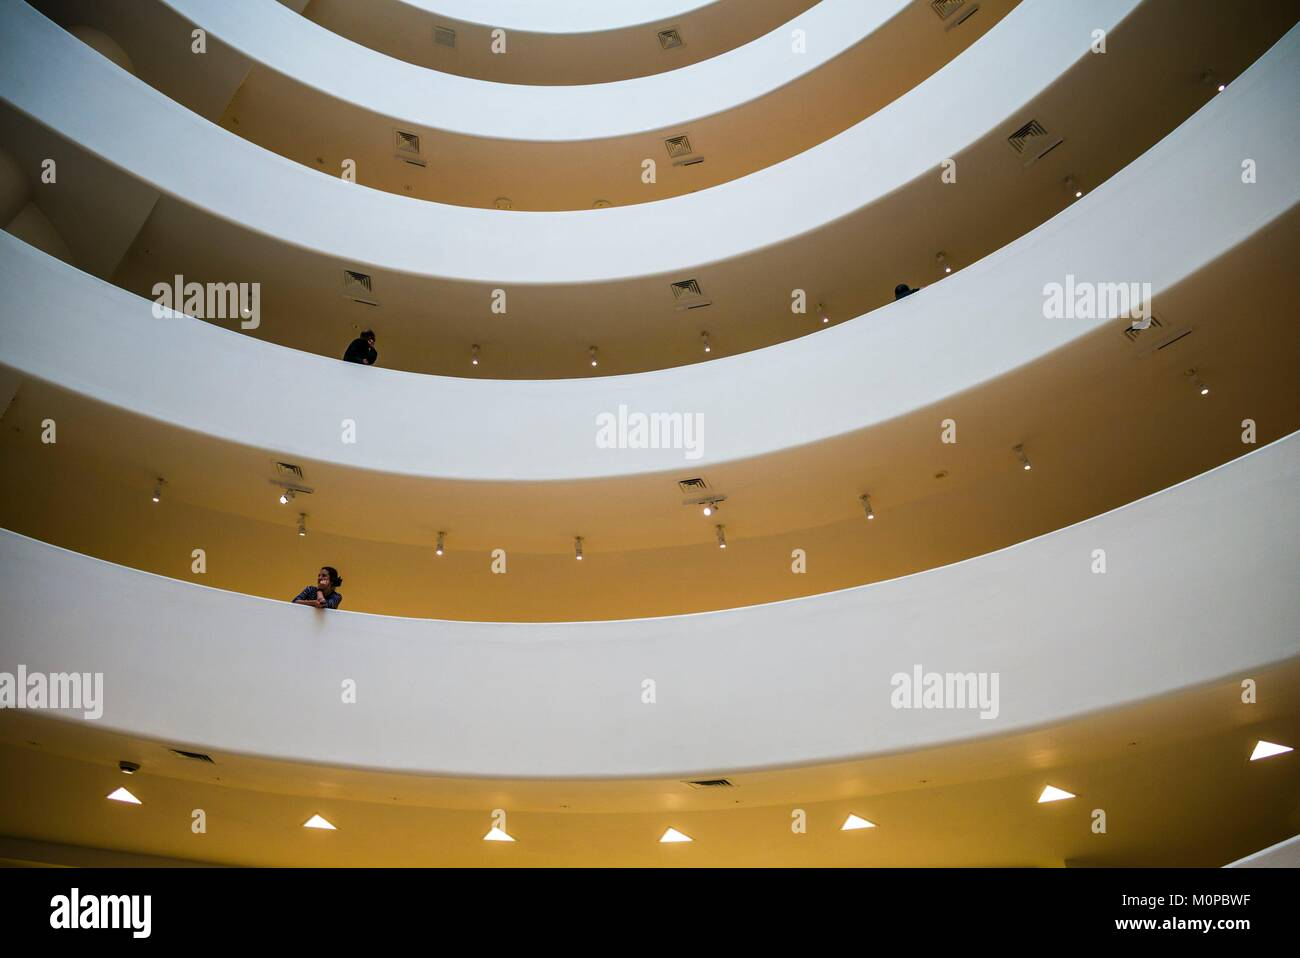 United States,New York,New York,Upper East Side,Guggenheim Museum, lobby intérieur Banque D'Images